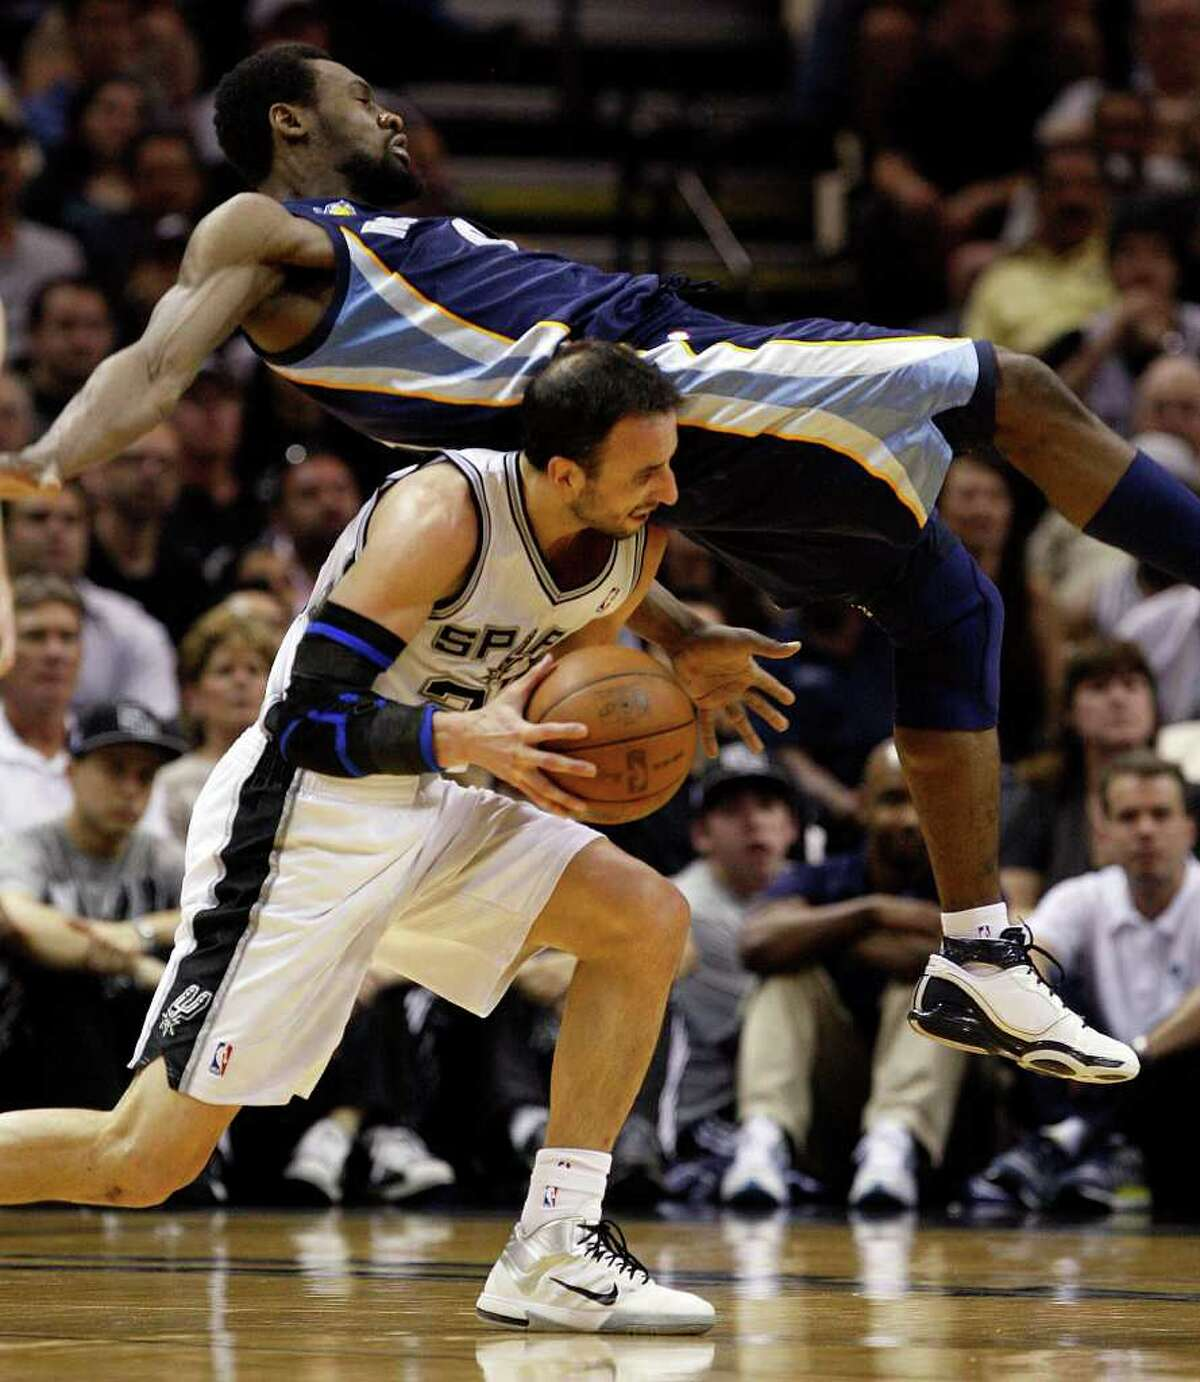 SPURS -- Memphis Grizzlies Tony Allen falls on San Antonio Spurs Manu Ginobili during the first half in the second game of the Western Conference Quarter Finals at the AT&T Center, April 20, 2011. JERRY LARA/glara@express-news.net